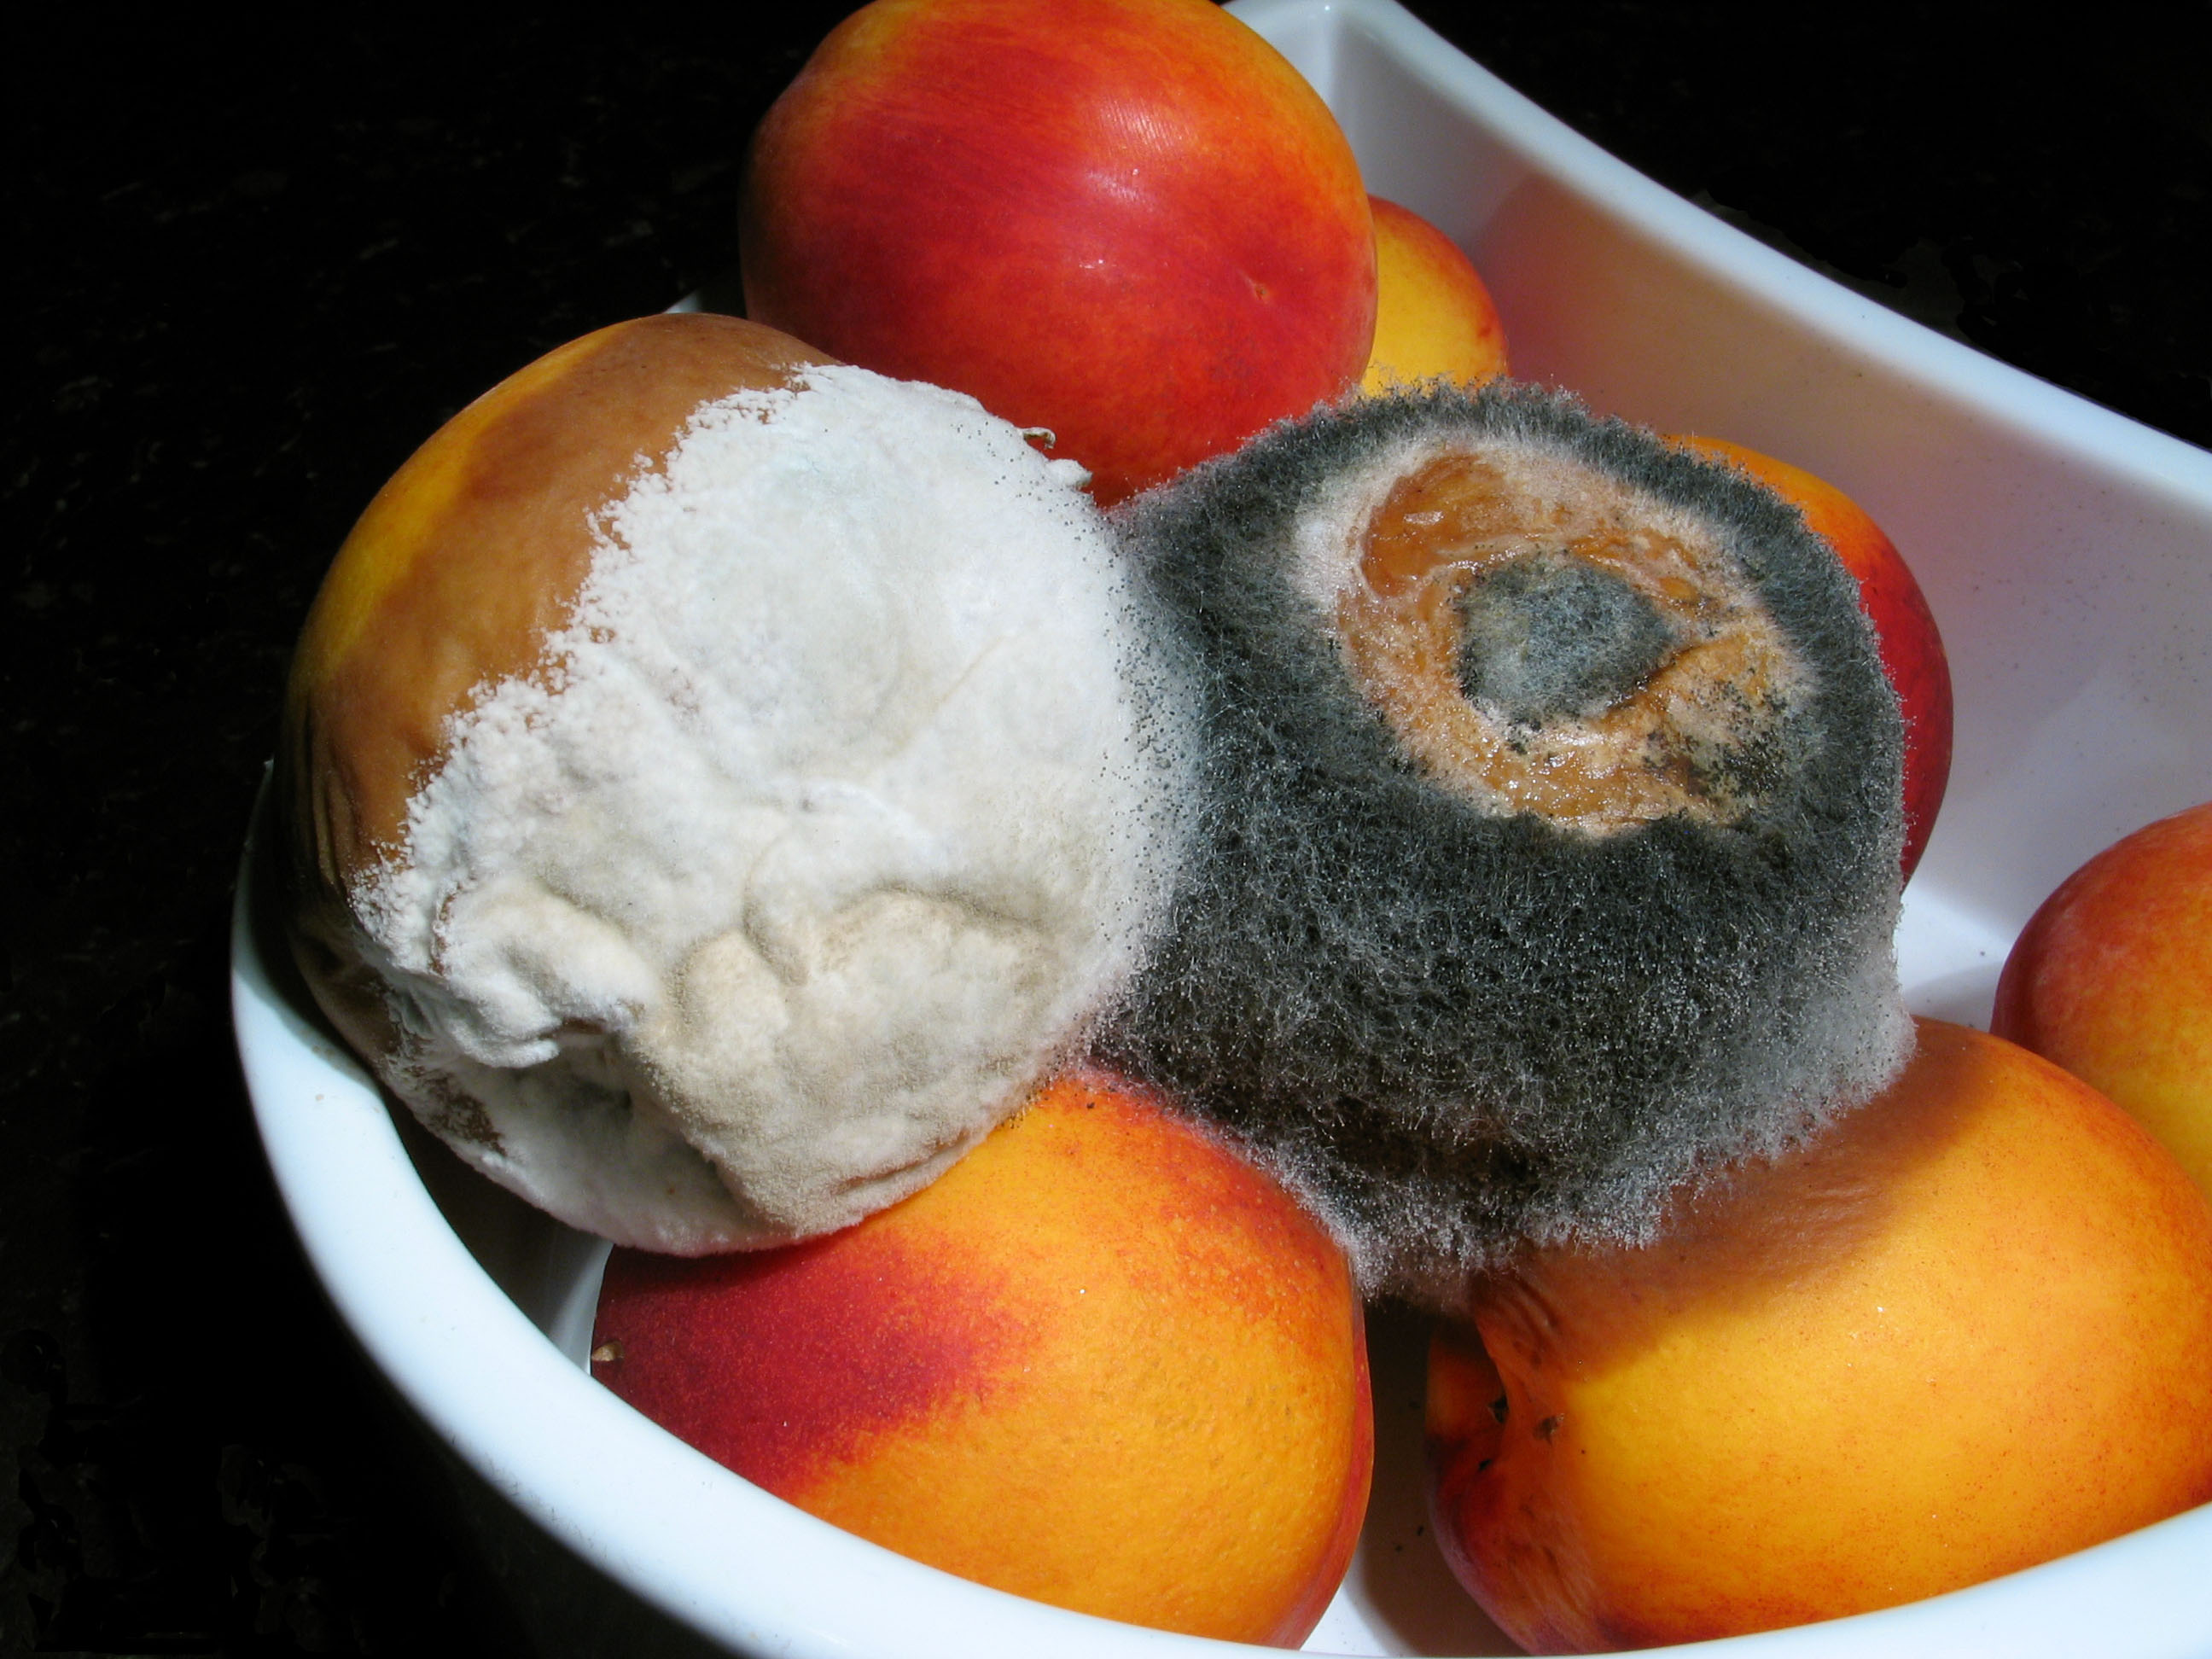 http://fr.academic.ru/pictures/frwiki/77/Moldy_nectarines.jpg